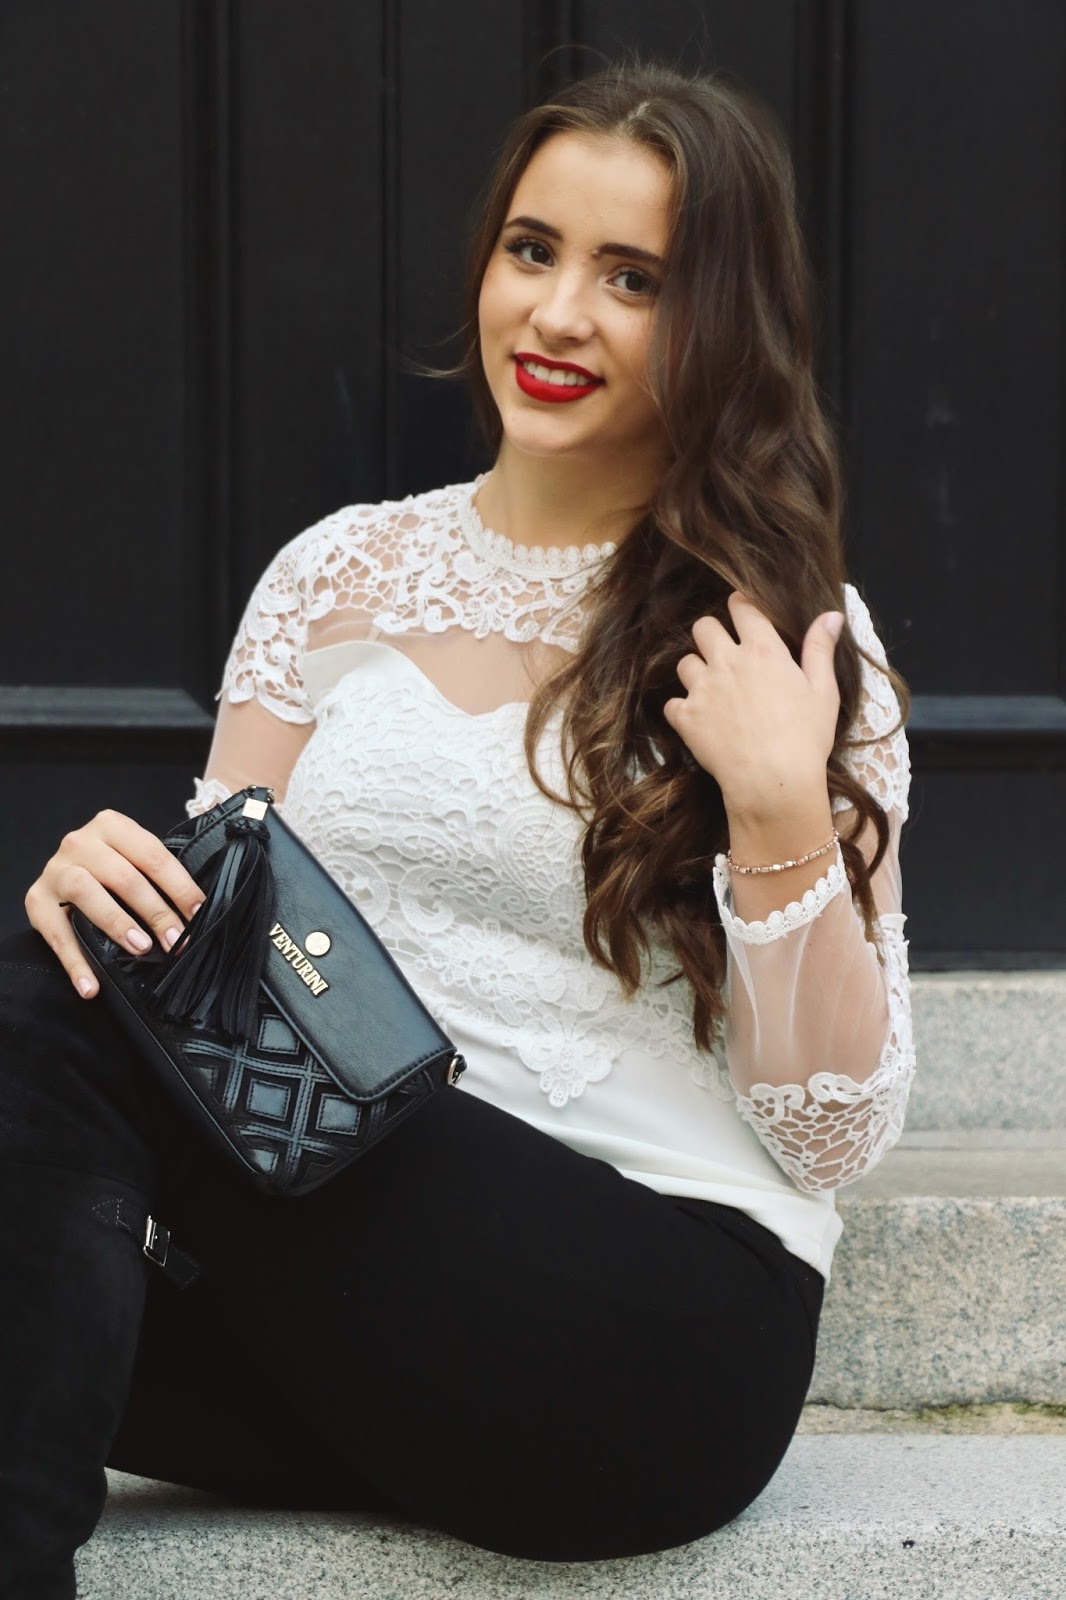 White Lace and Red Lips Holiday Outfit